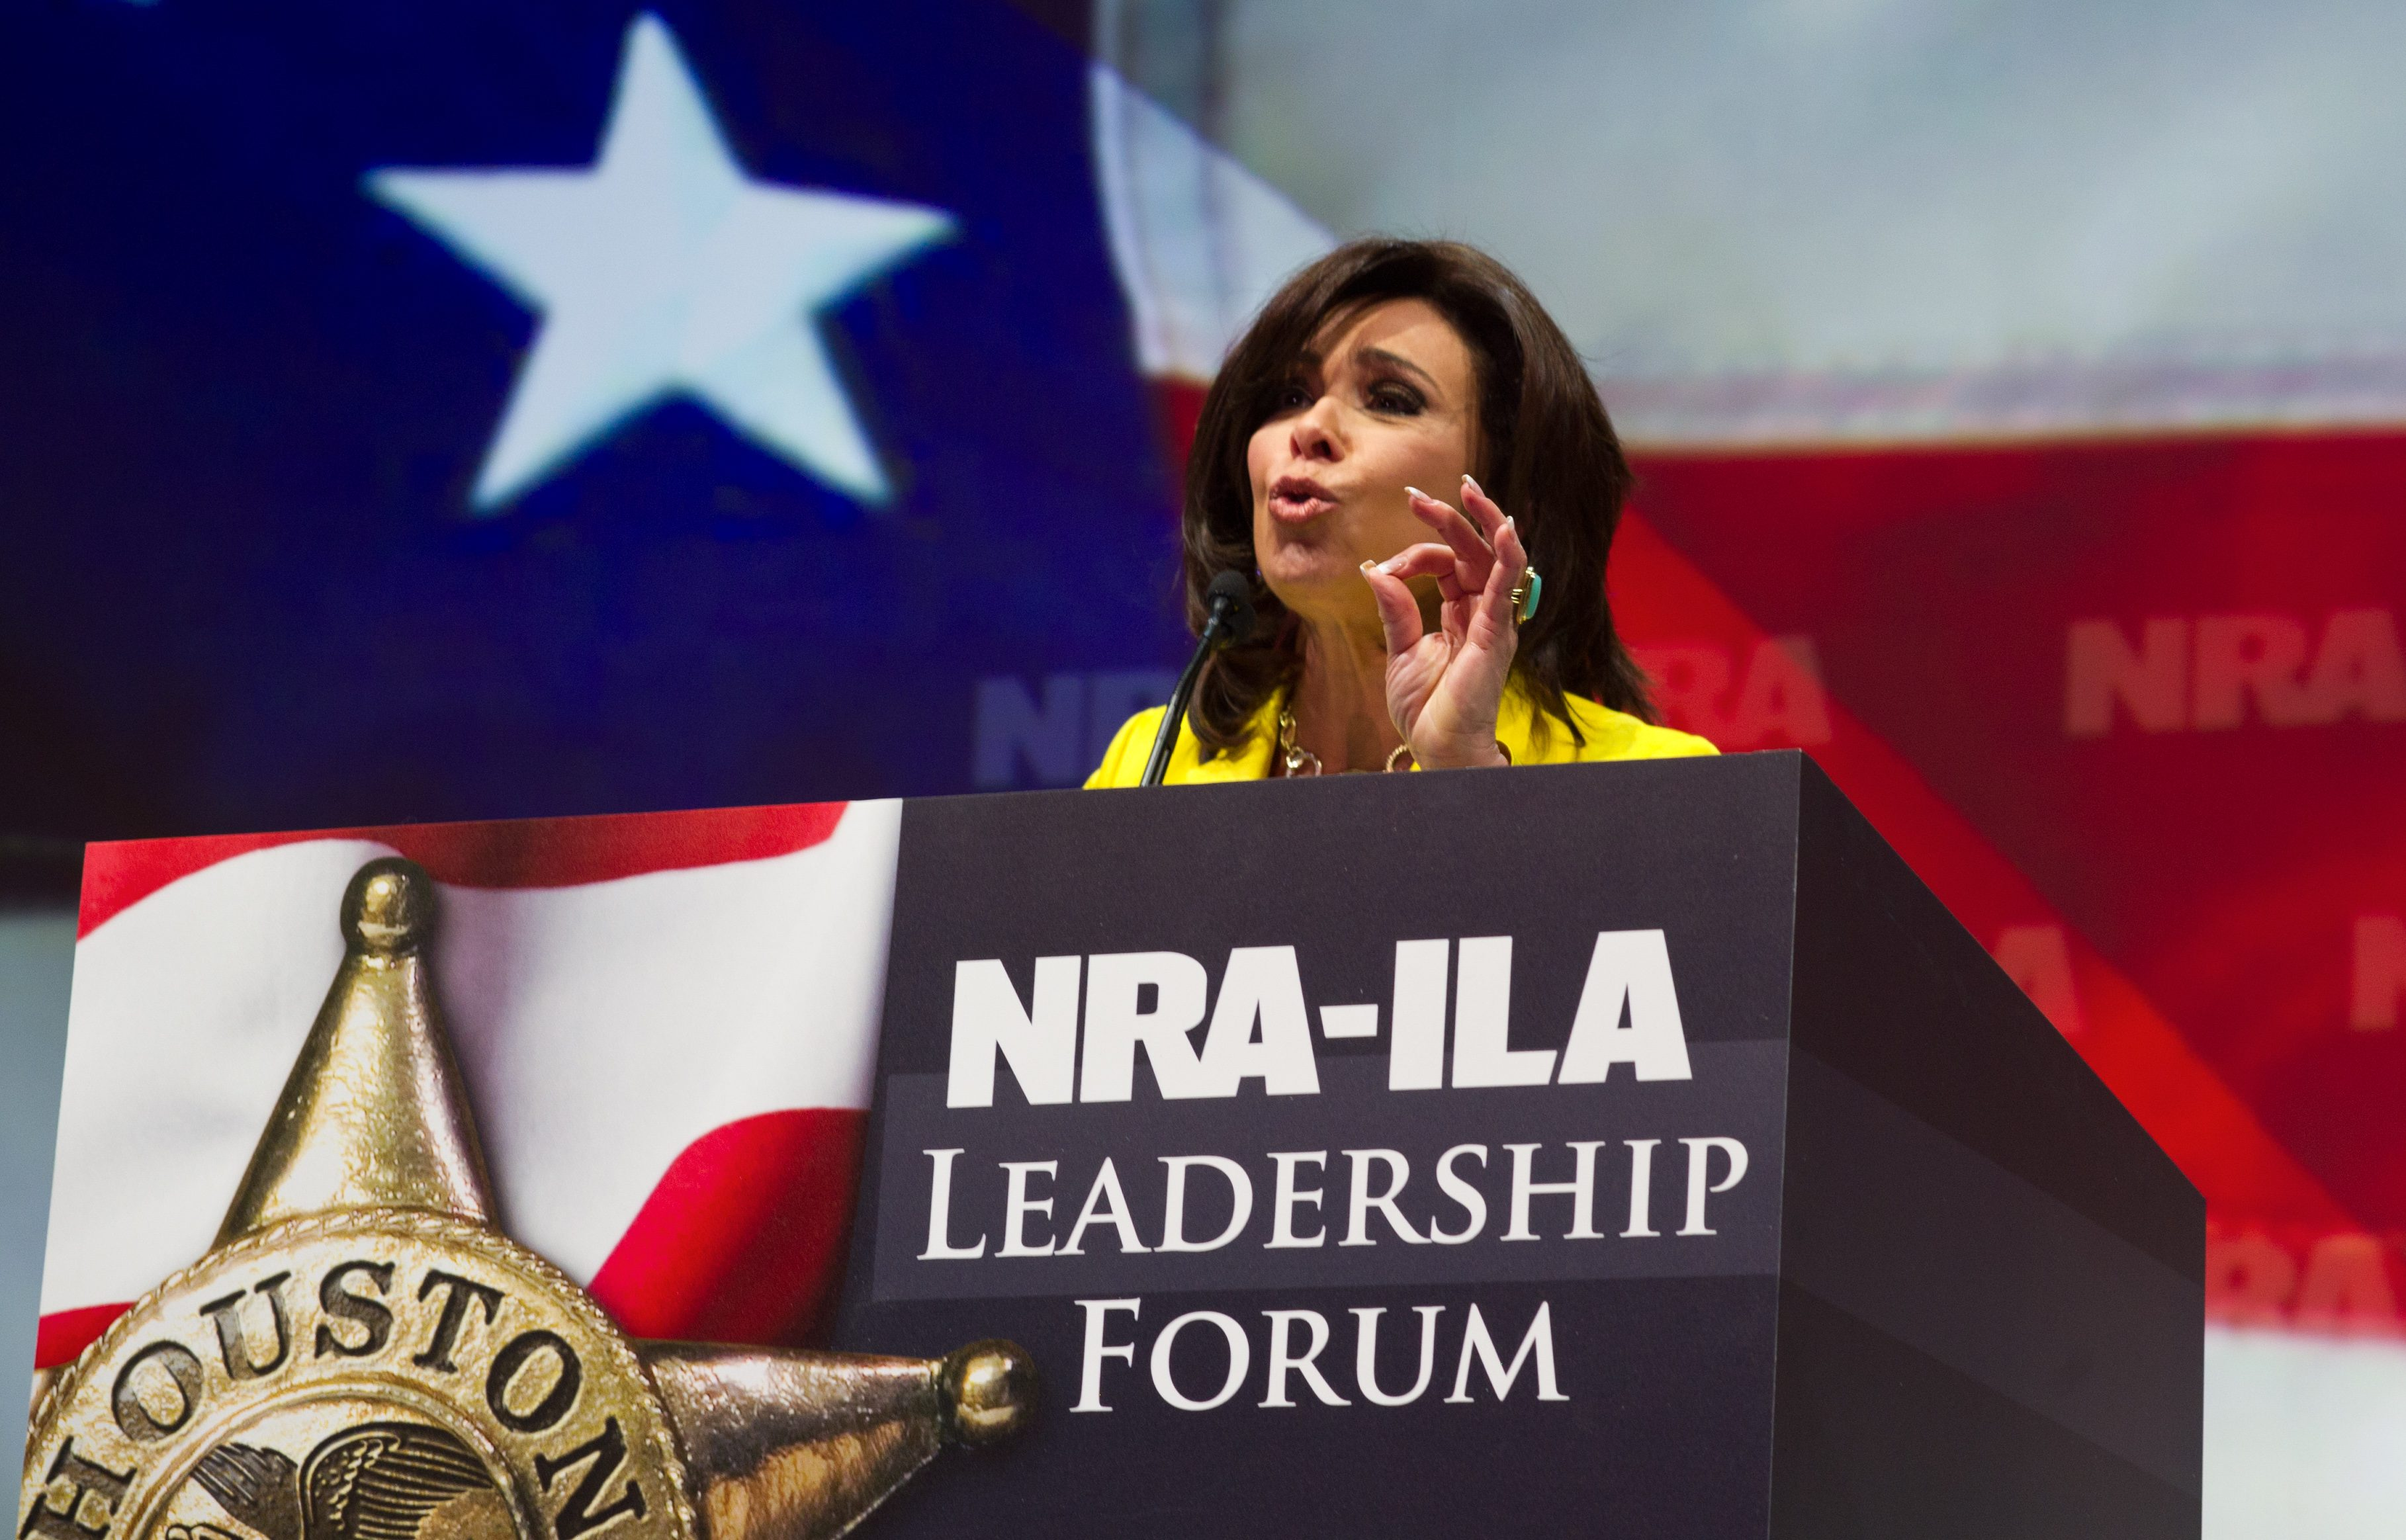 """Judge Jeanine Pirro, host of the television program """"Justice with Judge Jeanine,"""" addresses the NRA annual Convention May 3, 2013 in Houston, Texas. (KAREN BLEIER/AFP/Getty Images)"""